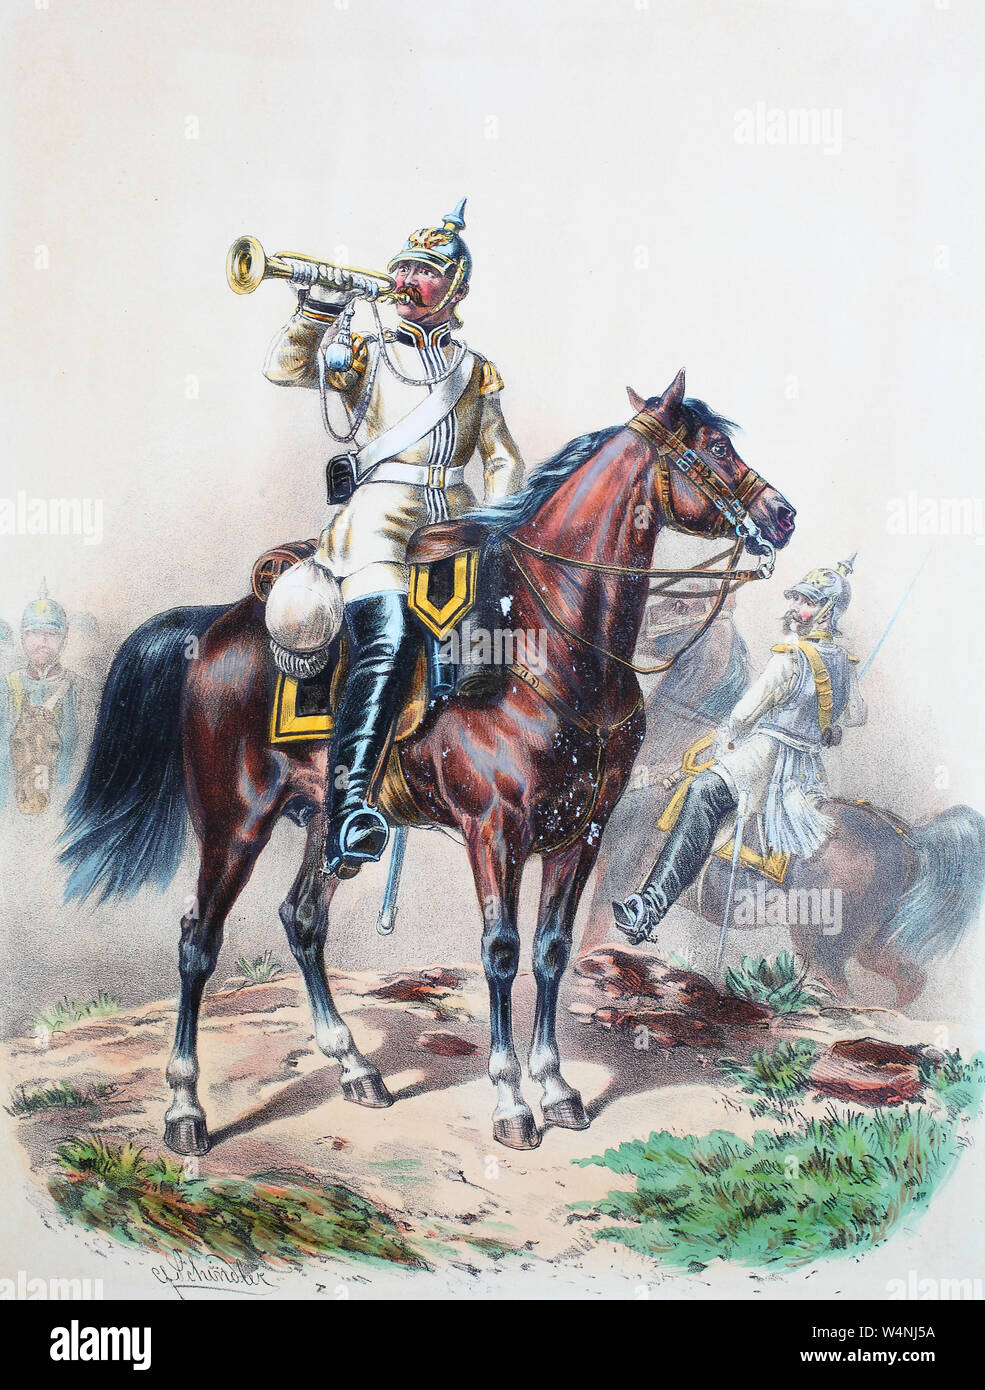 Royal Prussian Army, Guards Corps, Preußens Heer, preussische Garde, Leib Kürassier Regiment, Schlesisches No.1, Trompeter, Offizier, Digital improved reproduction of an illustration from the 19th century Stock Photo